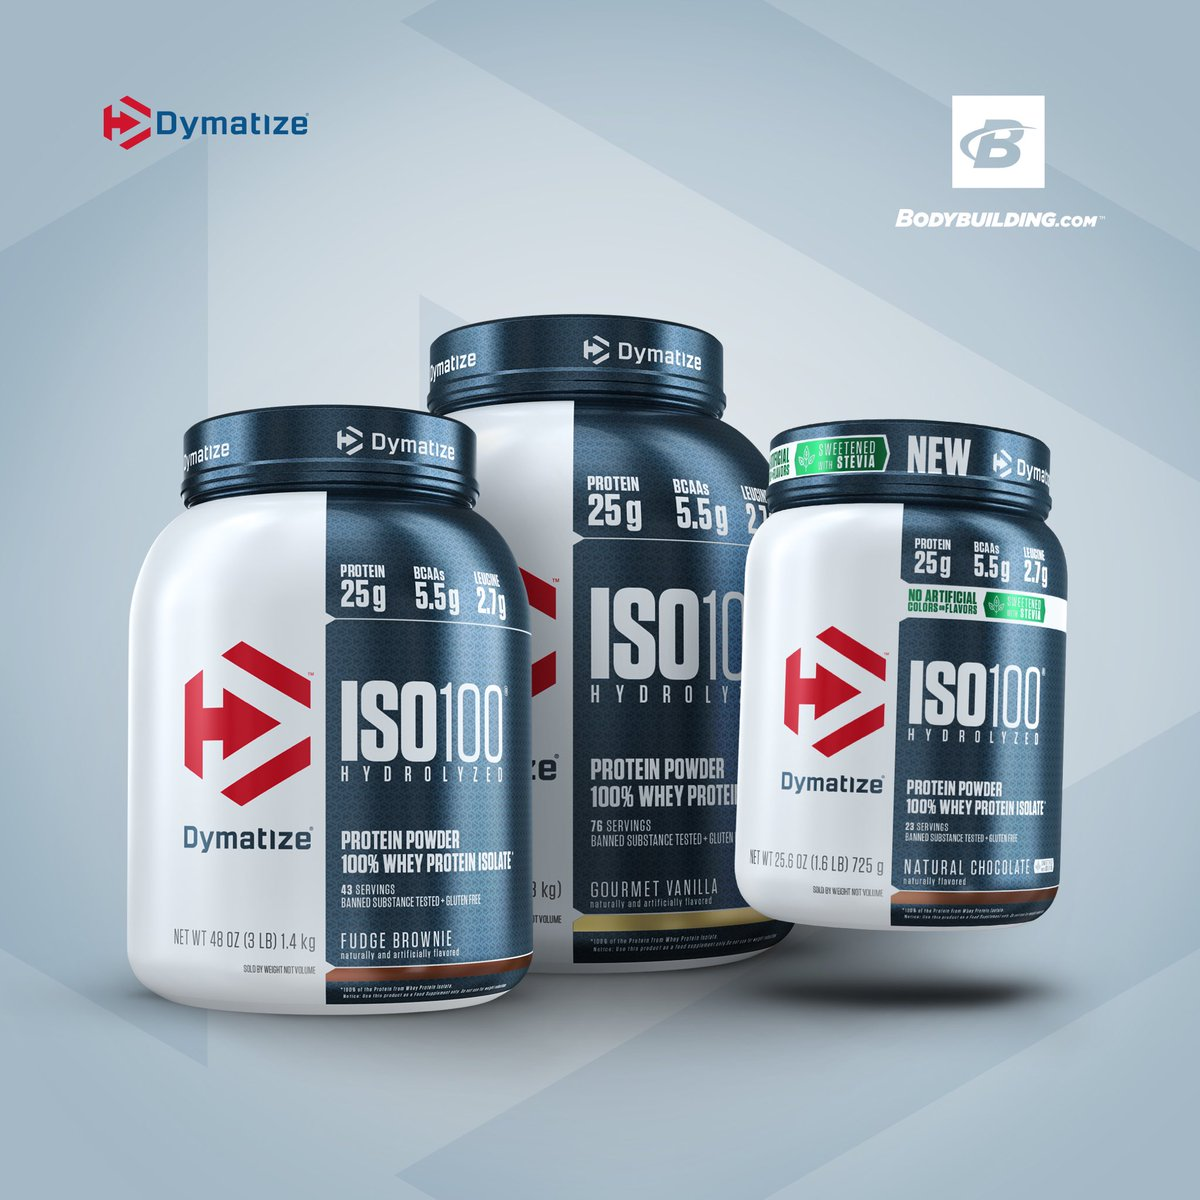 Alert 🚨 Don't miss out! Get 25% off Dymatize ISO100 with coupon code TOPSELL  SHOP NOW 👉 http://bit.ly/bbISO100  @Bodybuildingcom